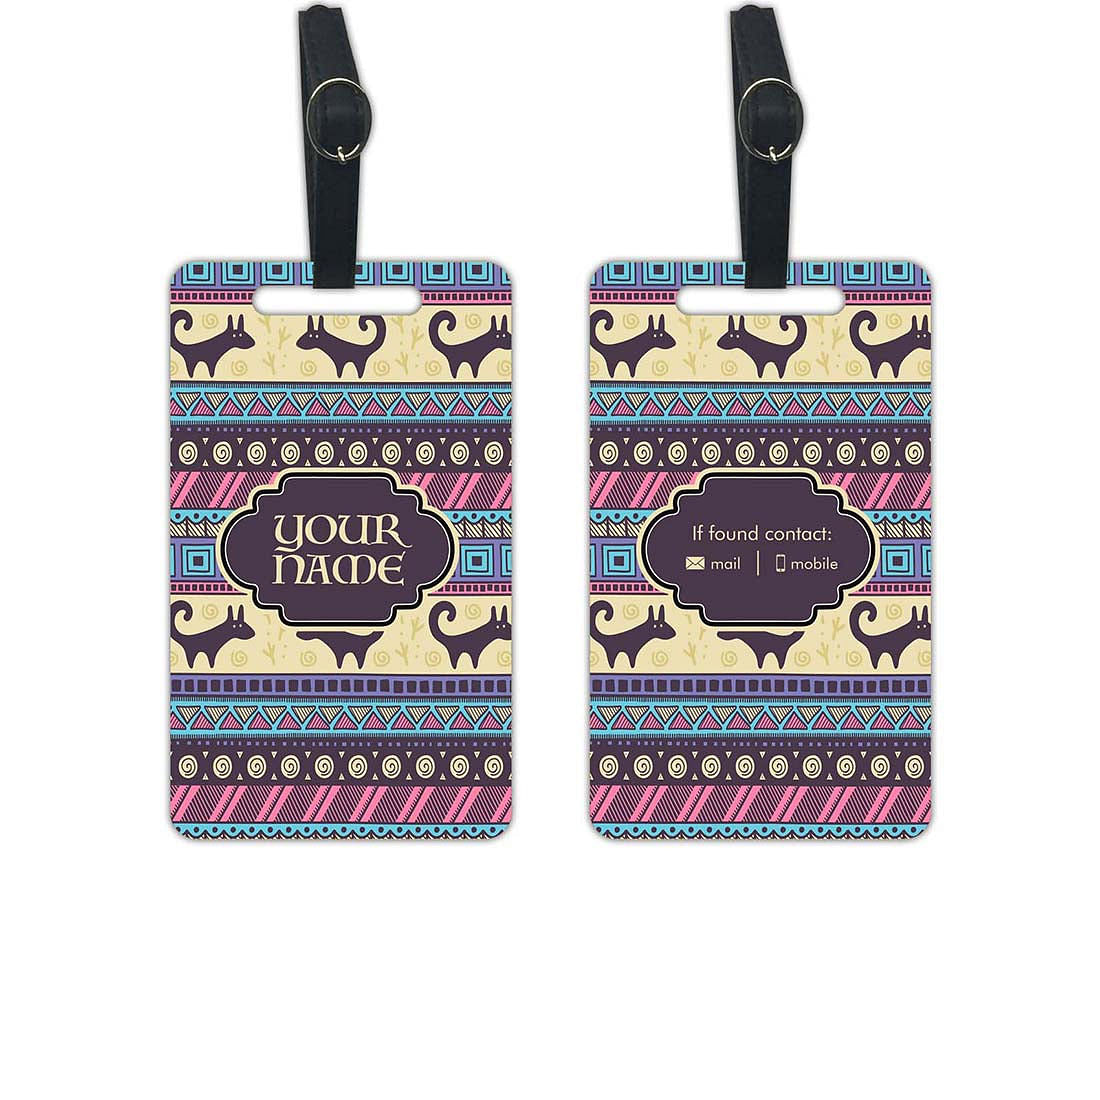 Personalised Unique Luggage Tag - Add your Name - Set of 2